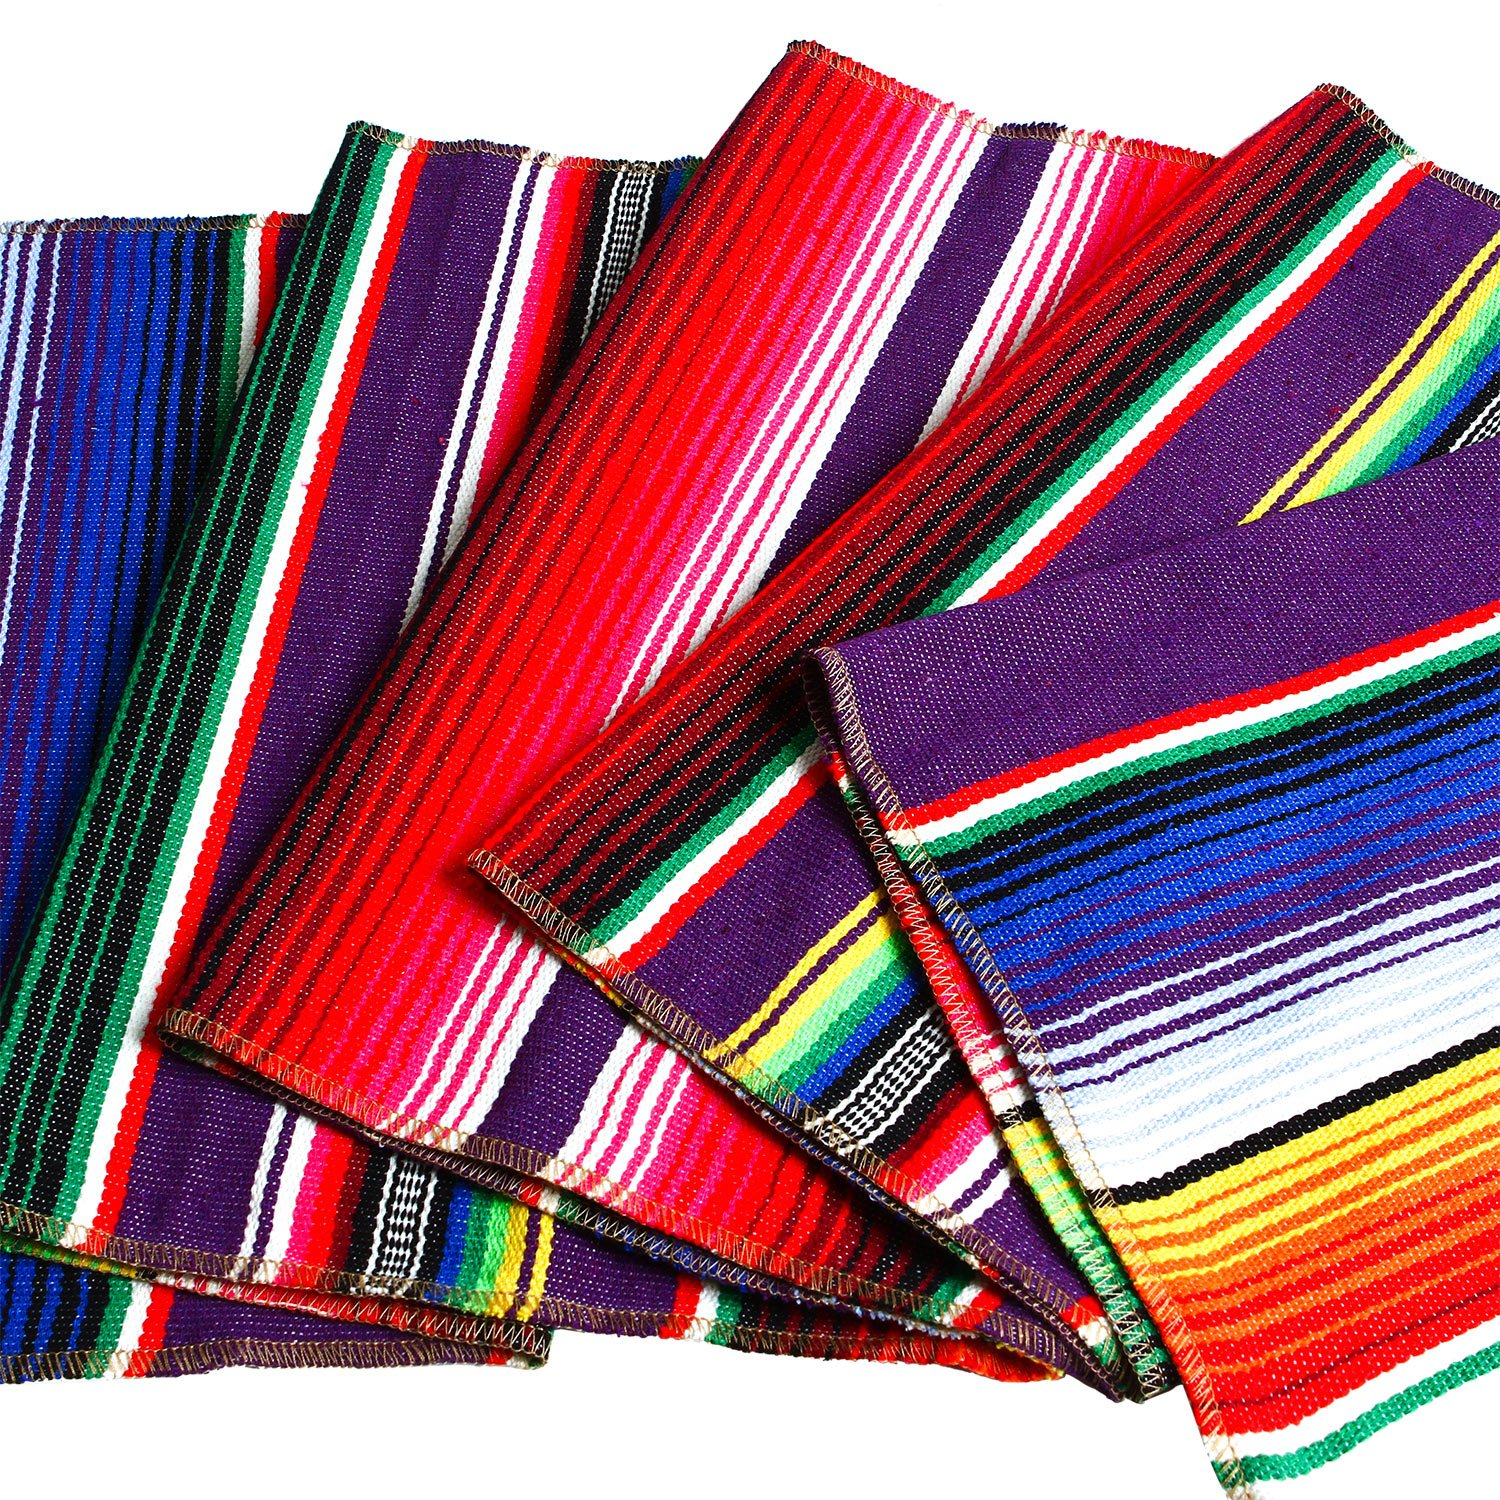 Aneco 2 Pack 14 by 84 Inch Mexican Table Runner Mexican Serape Blanket Cotton Colorful Fringe Table Runners for Mexican Party Wedding Kitchen Outdoor Decorations by Aneco (Image #2)